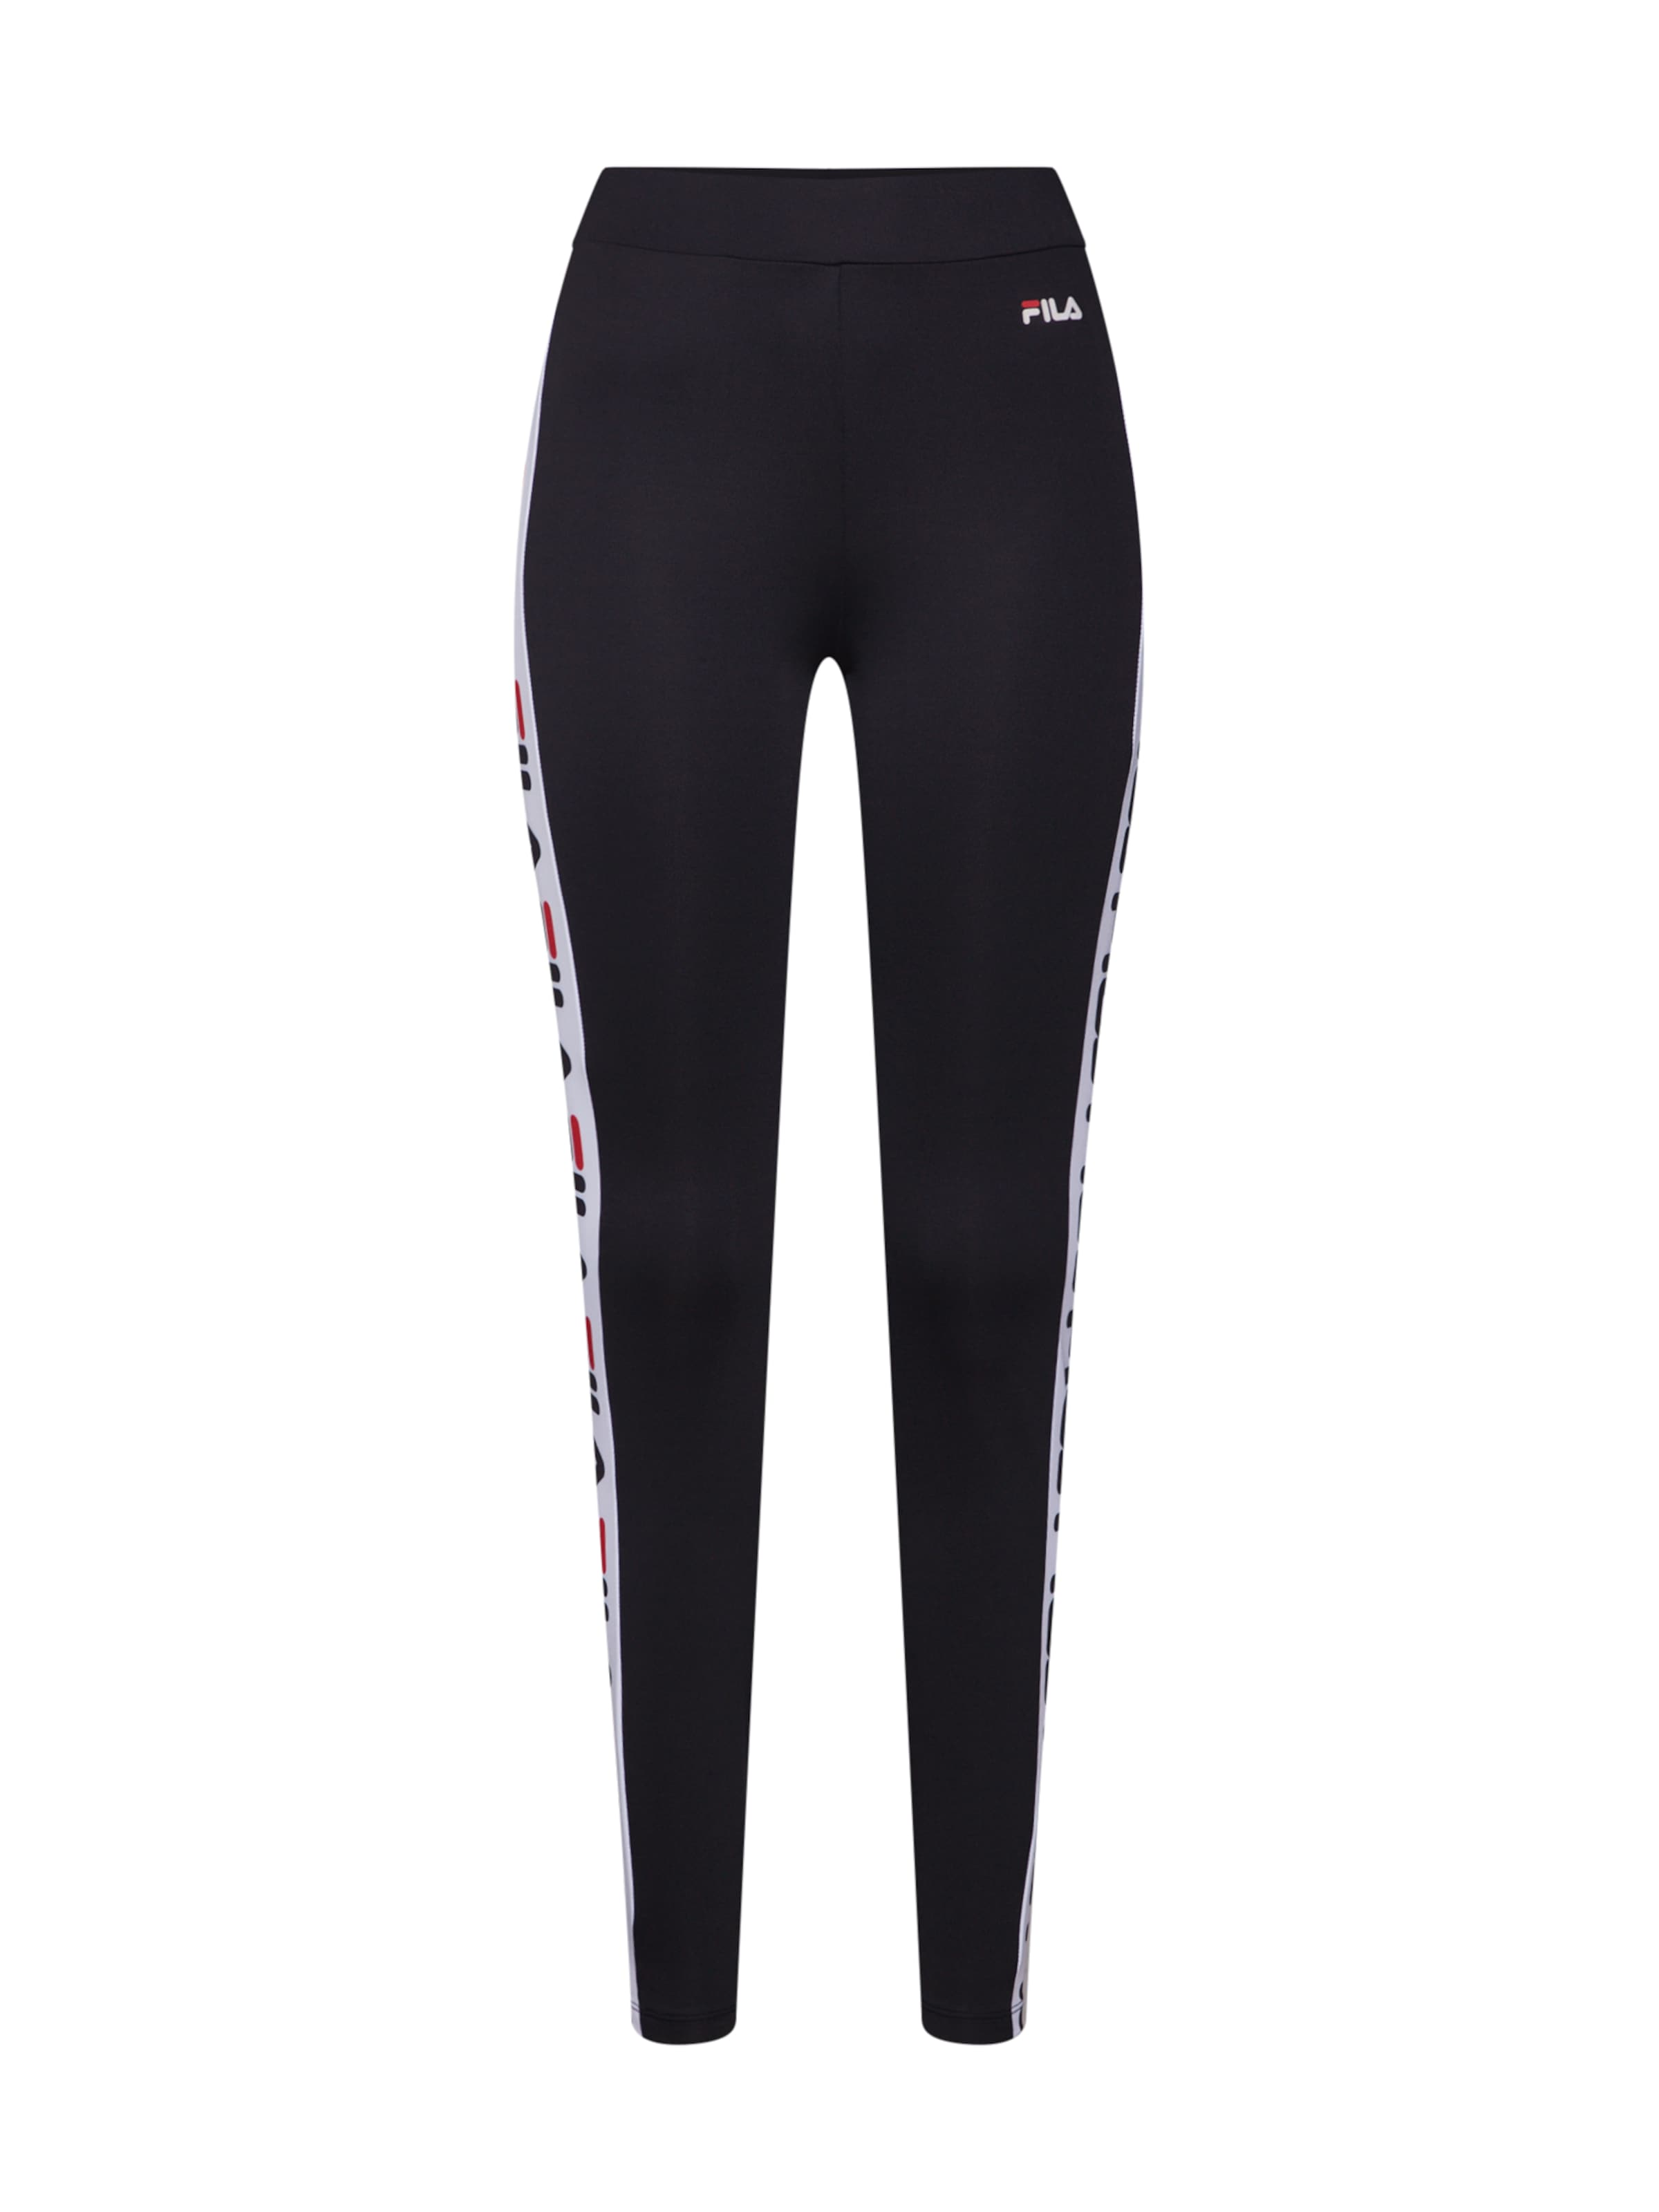 'holly Pantalon En Fila Leggings' Blanc RougeNoir rshQdxCt